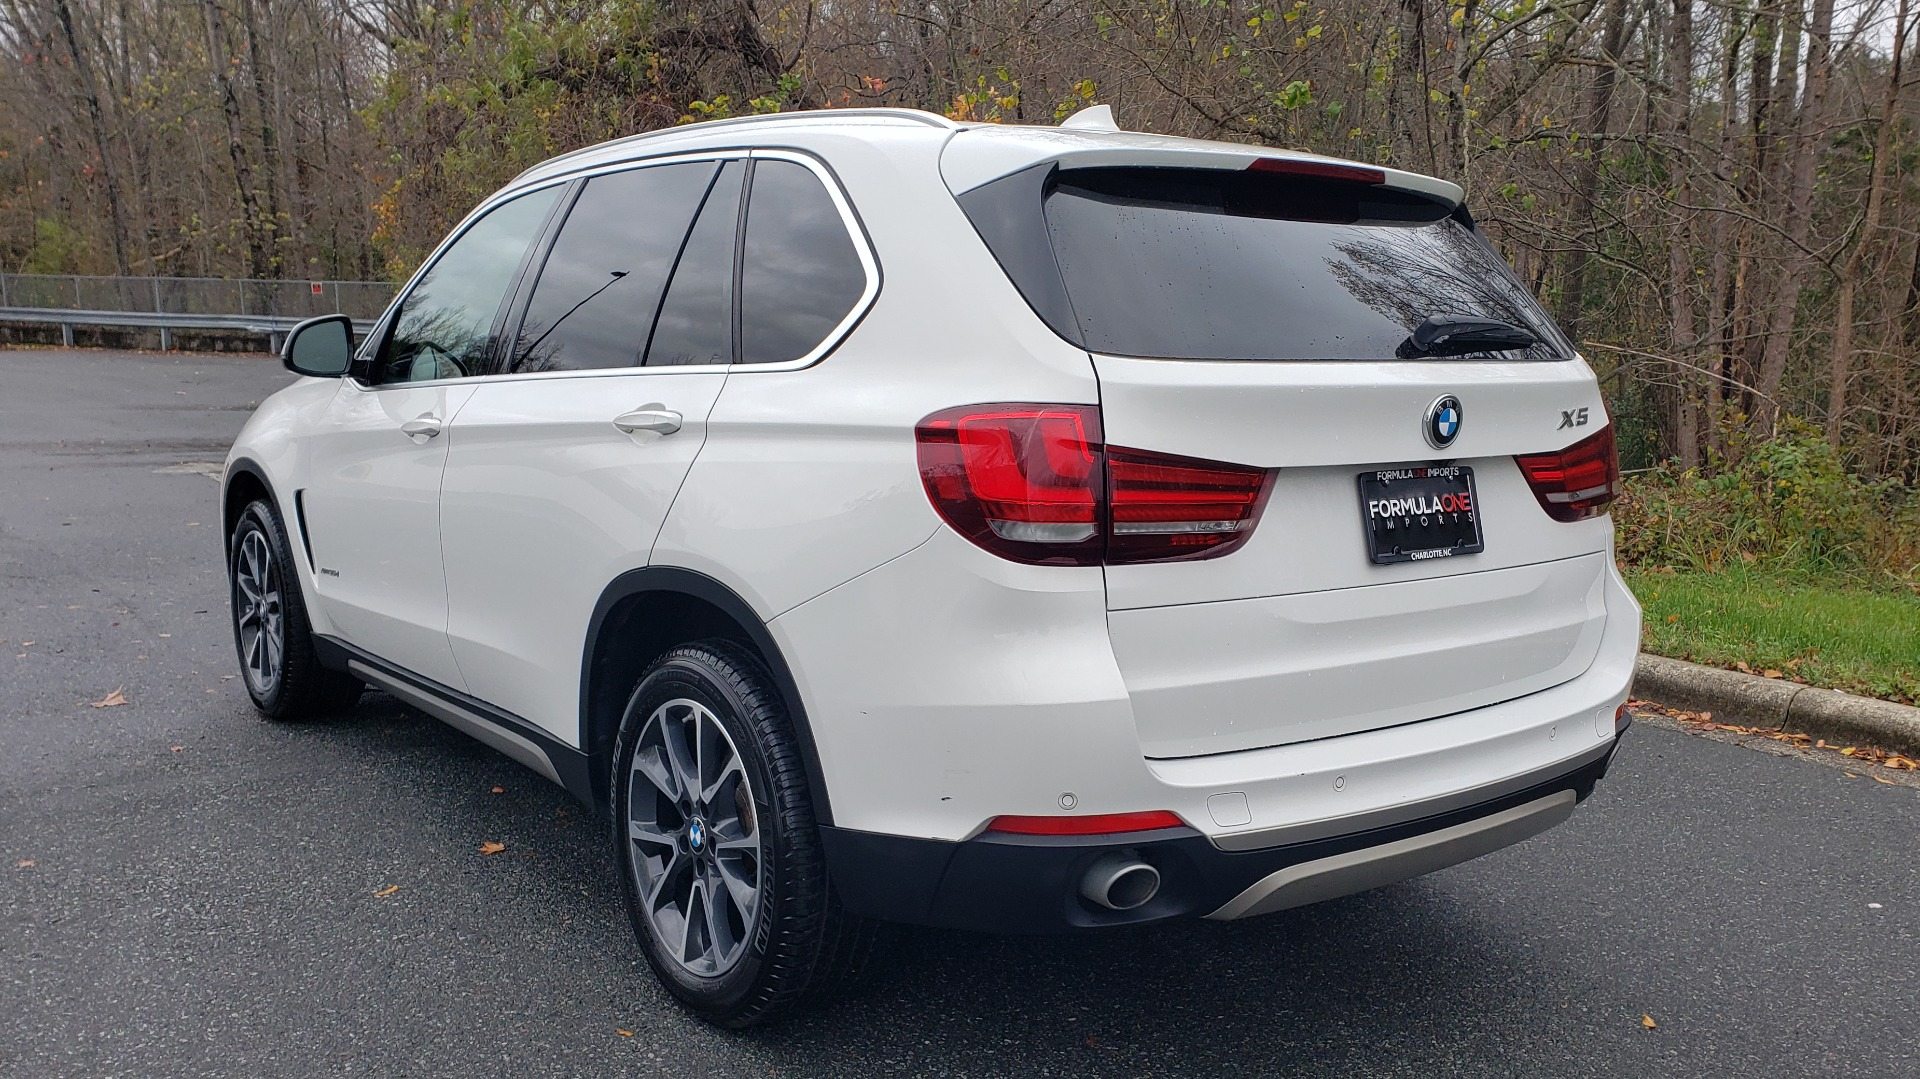 Used 2017 BMW X5 XDRIVE35D / AWD / NAV / DIESEL / SUNROOF / REARVIEW for sale $34,595 at Formula Imports in Charlotte NC 28227 3